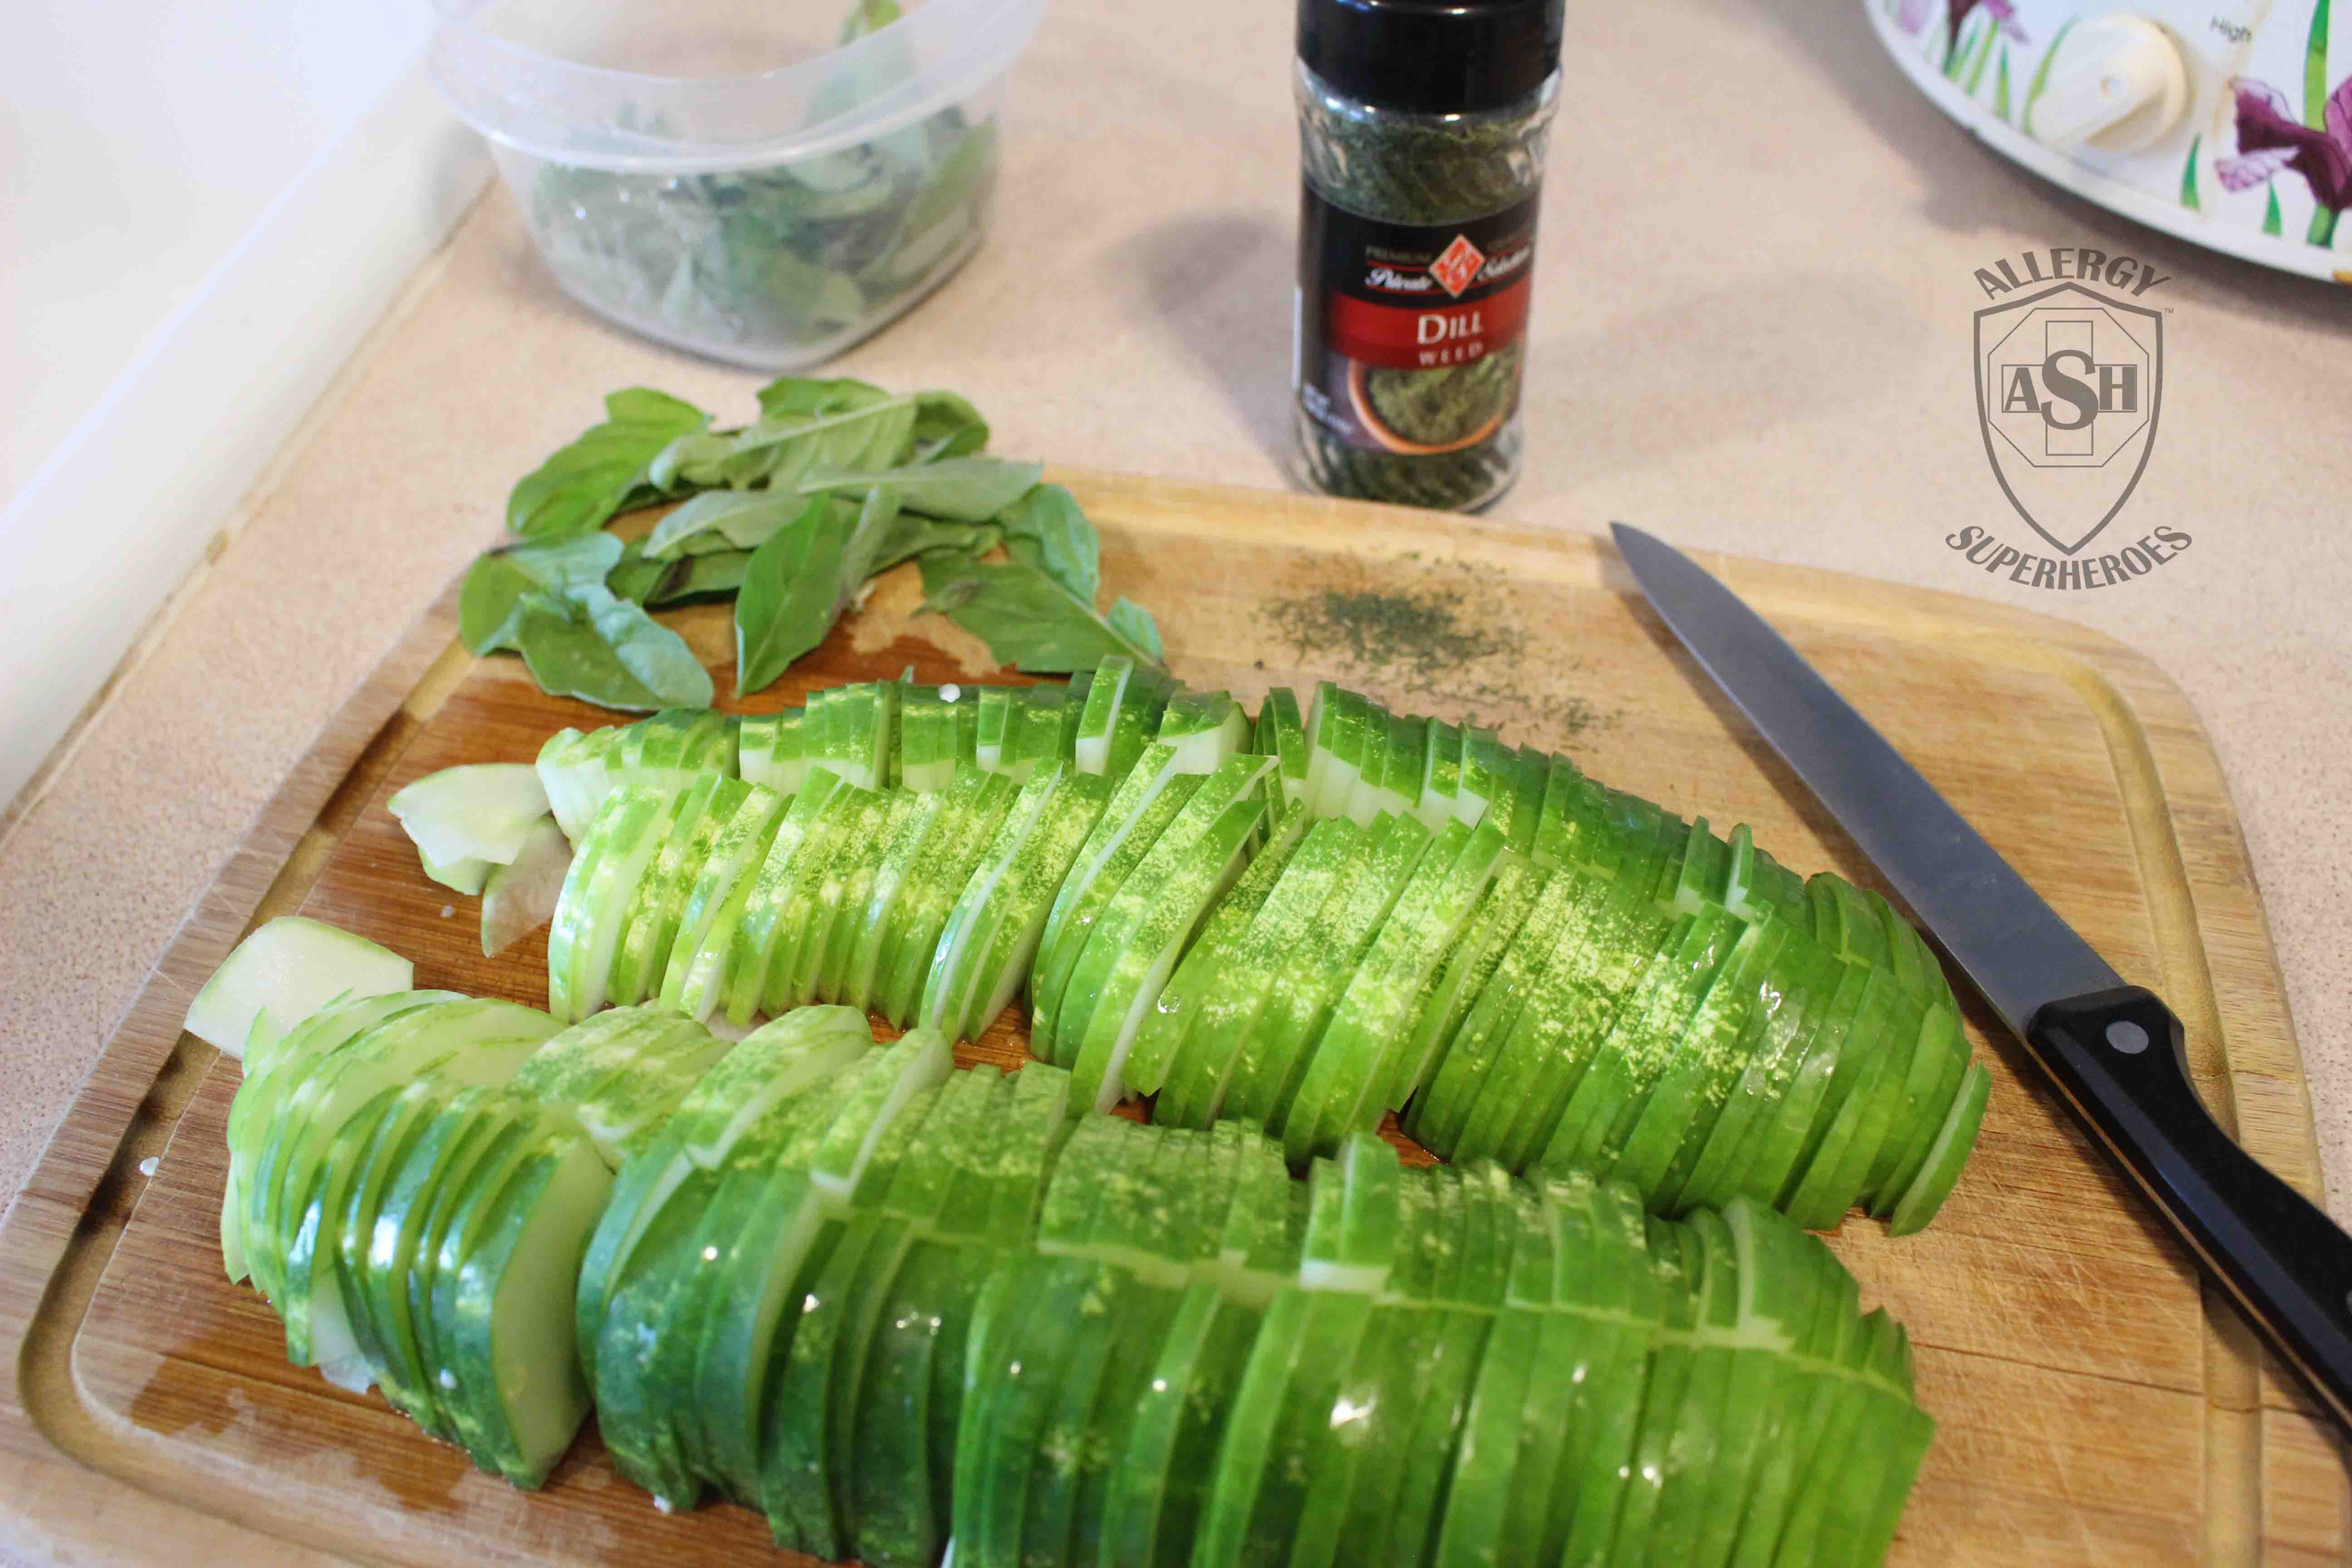 Easy and Delicious Basil Cucumber Dill Salad   from Allergy Superheroes